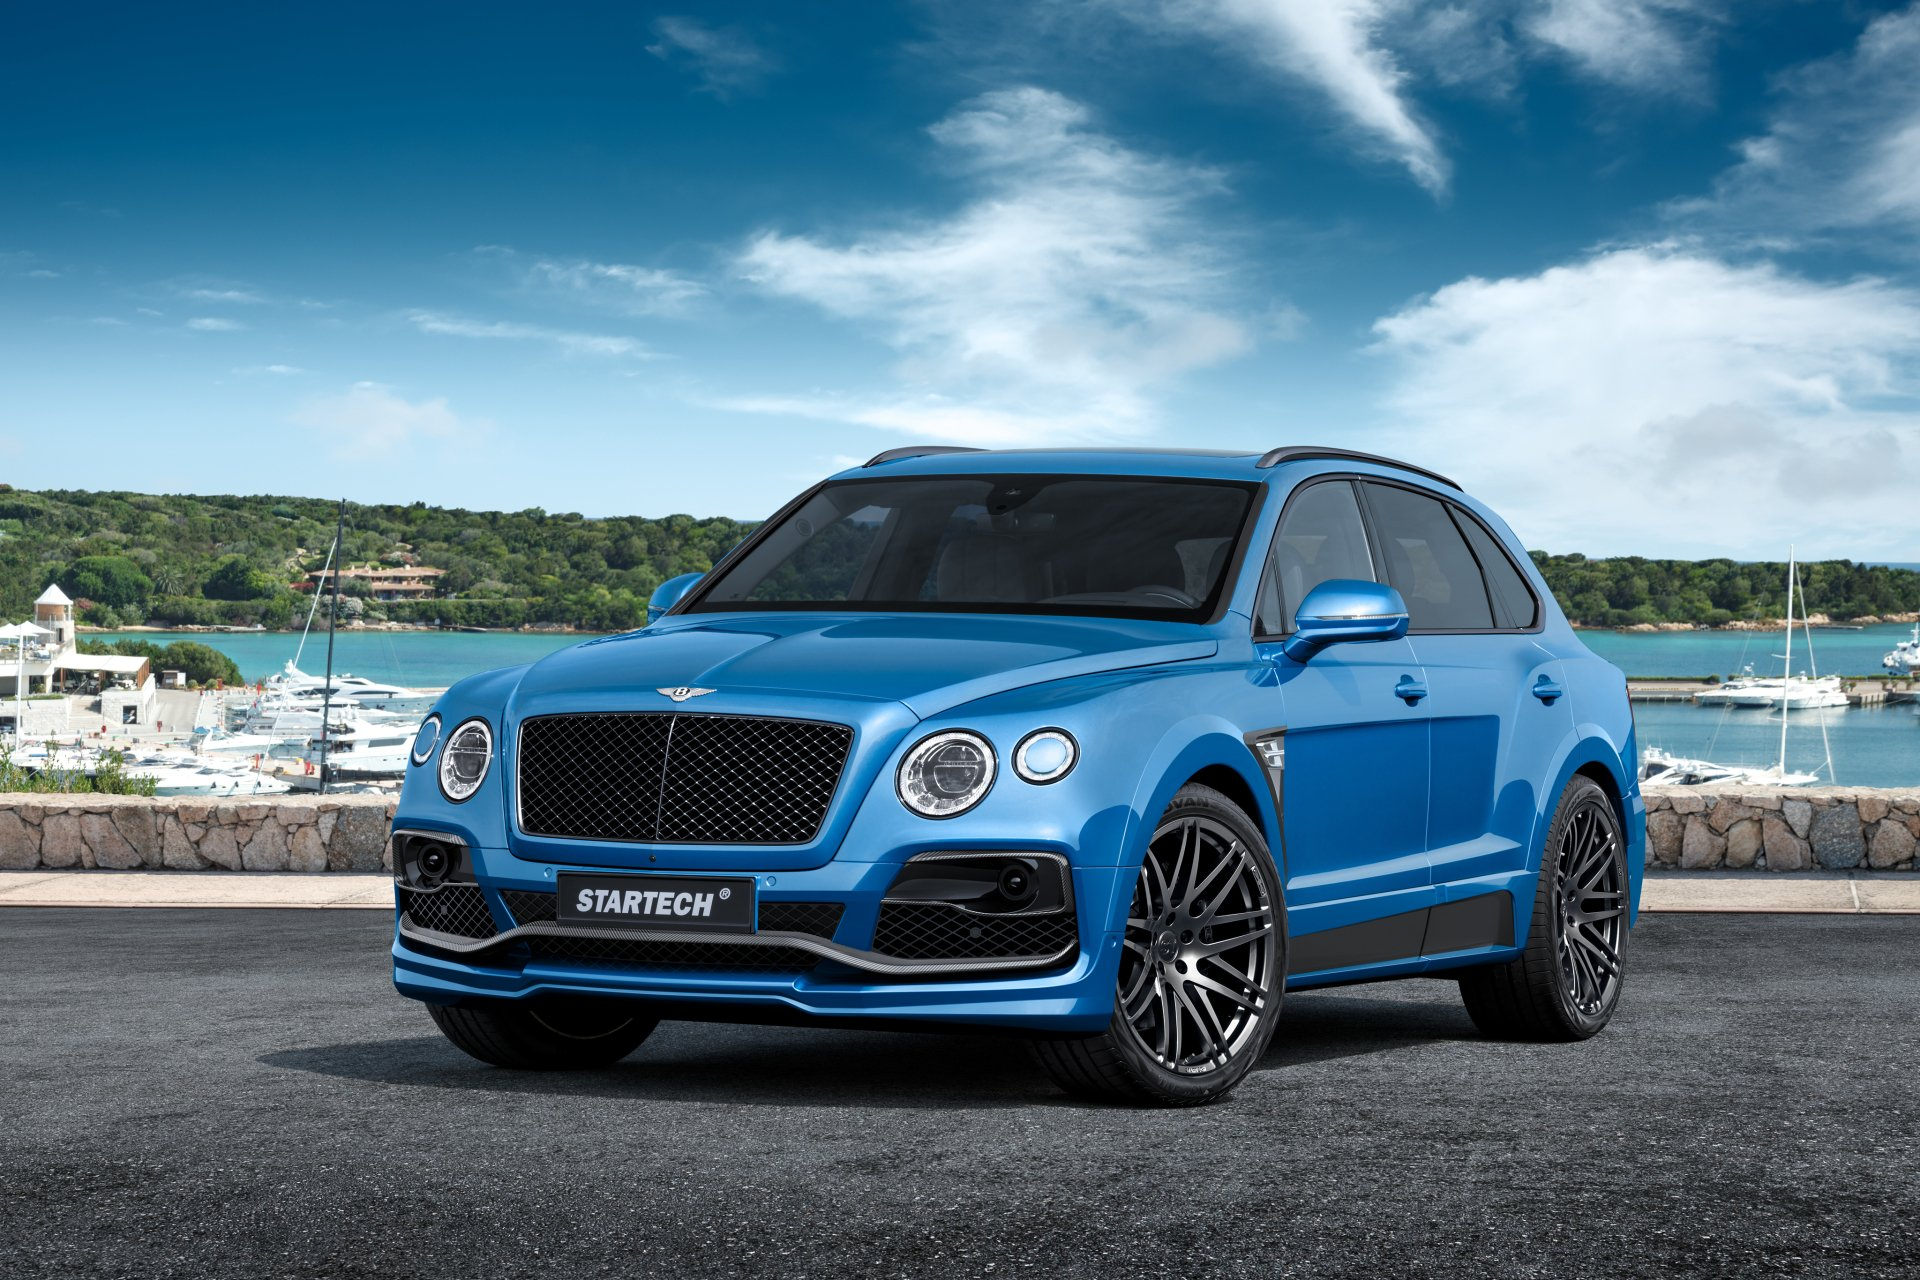 50 Bentley Bentayga Hd Wallpapers Background Images Wallpaper Abyss